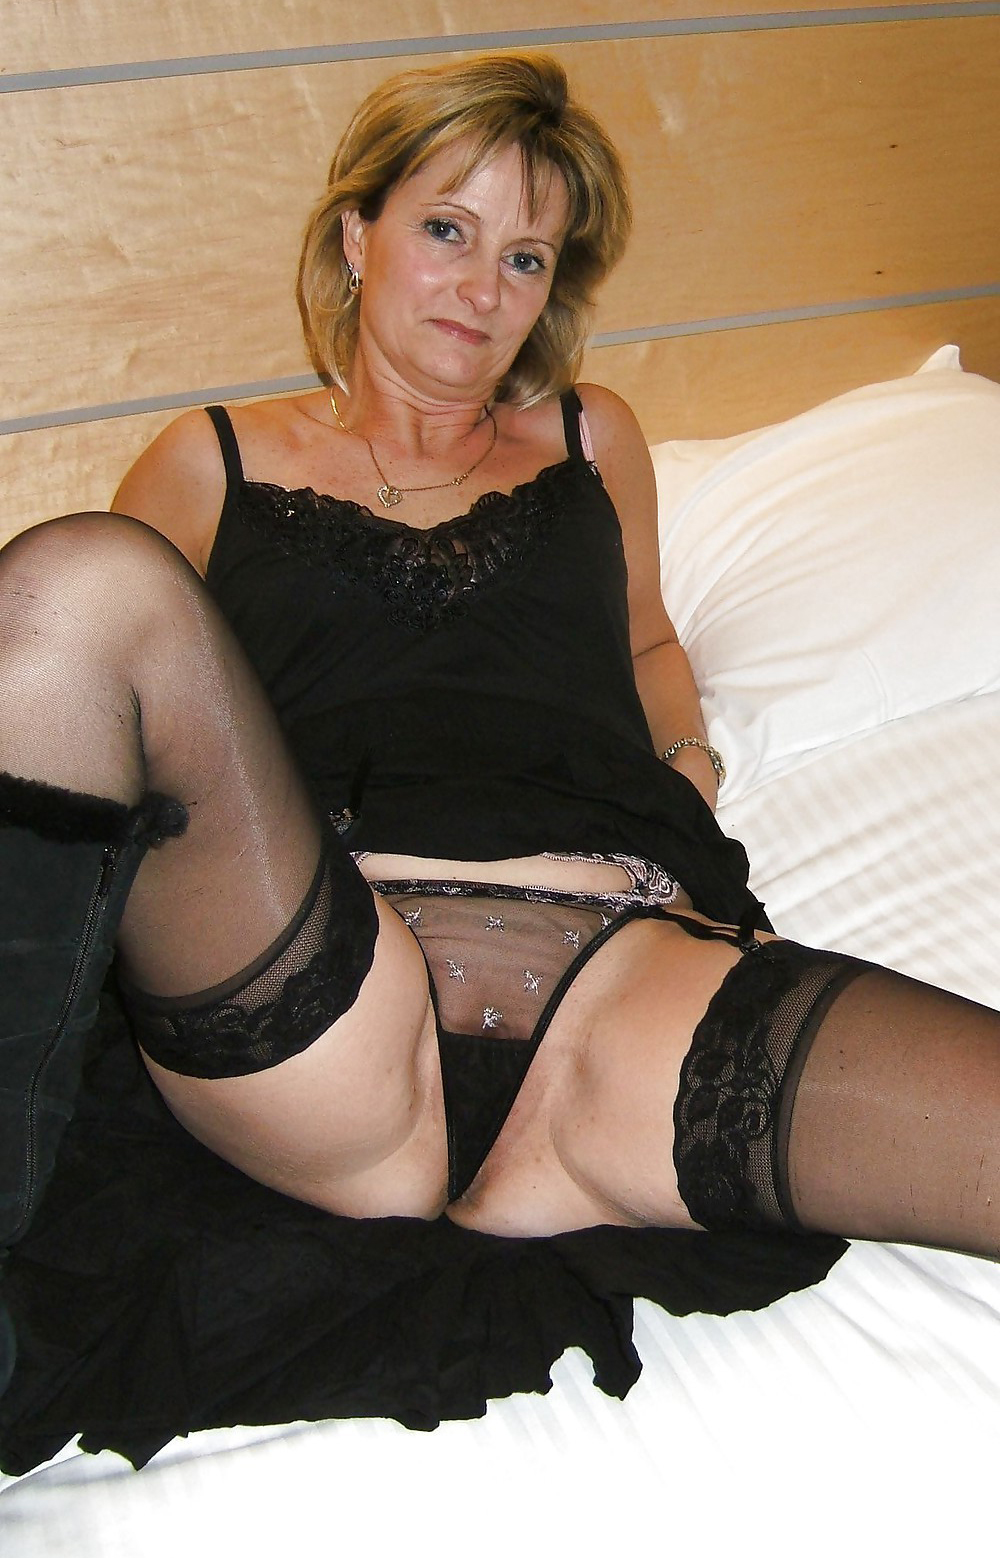 Remarkable, Pantyhose granny stockings everything. opinion